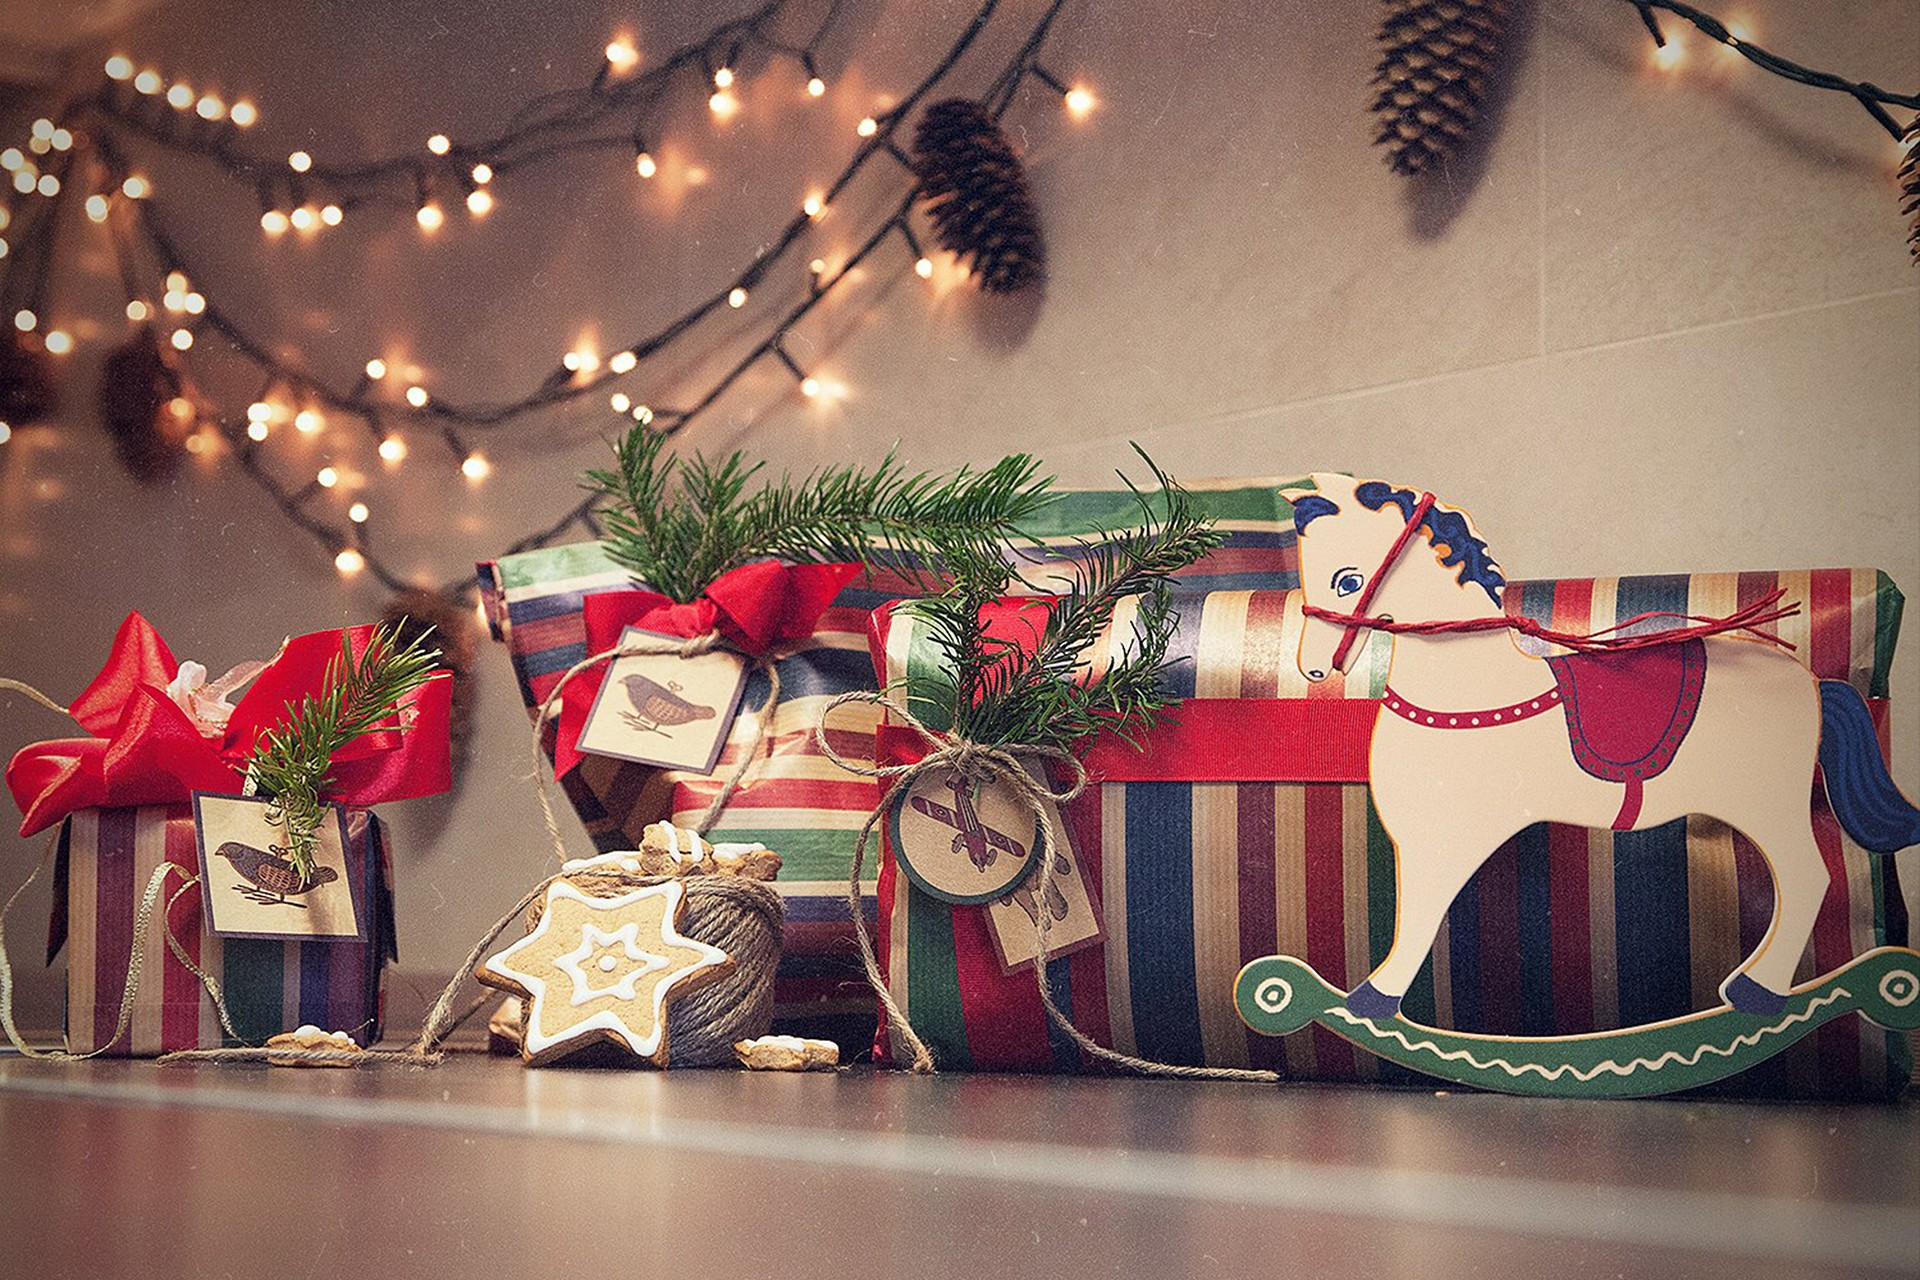 Vintage Christmas background ·â'  Download free stunning wallpapers